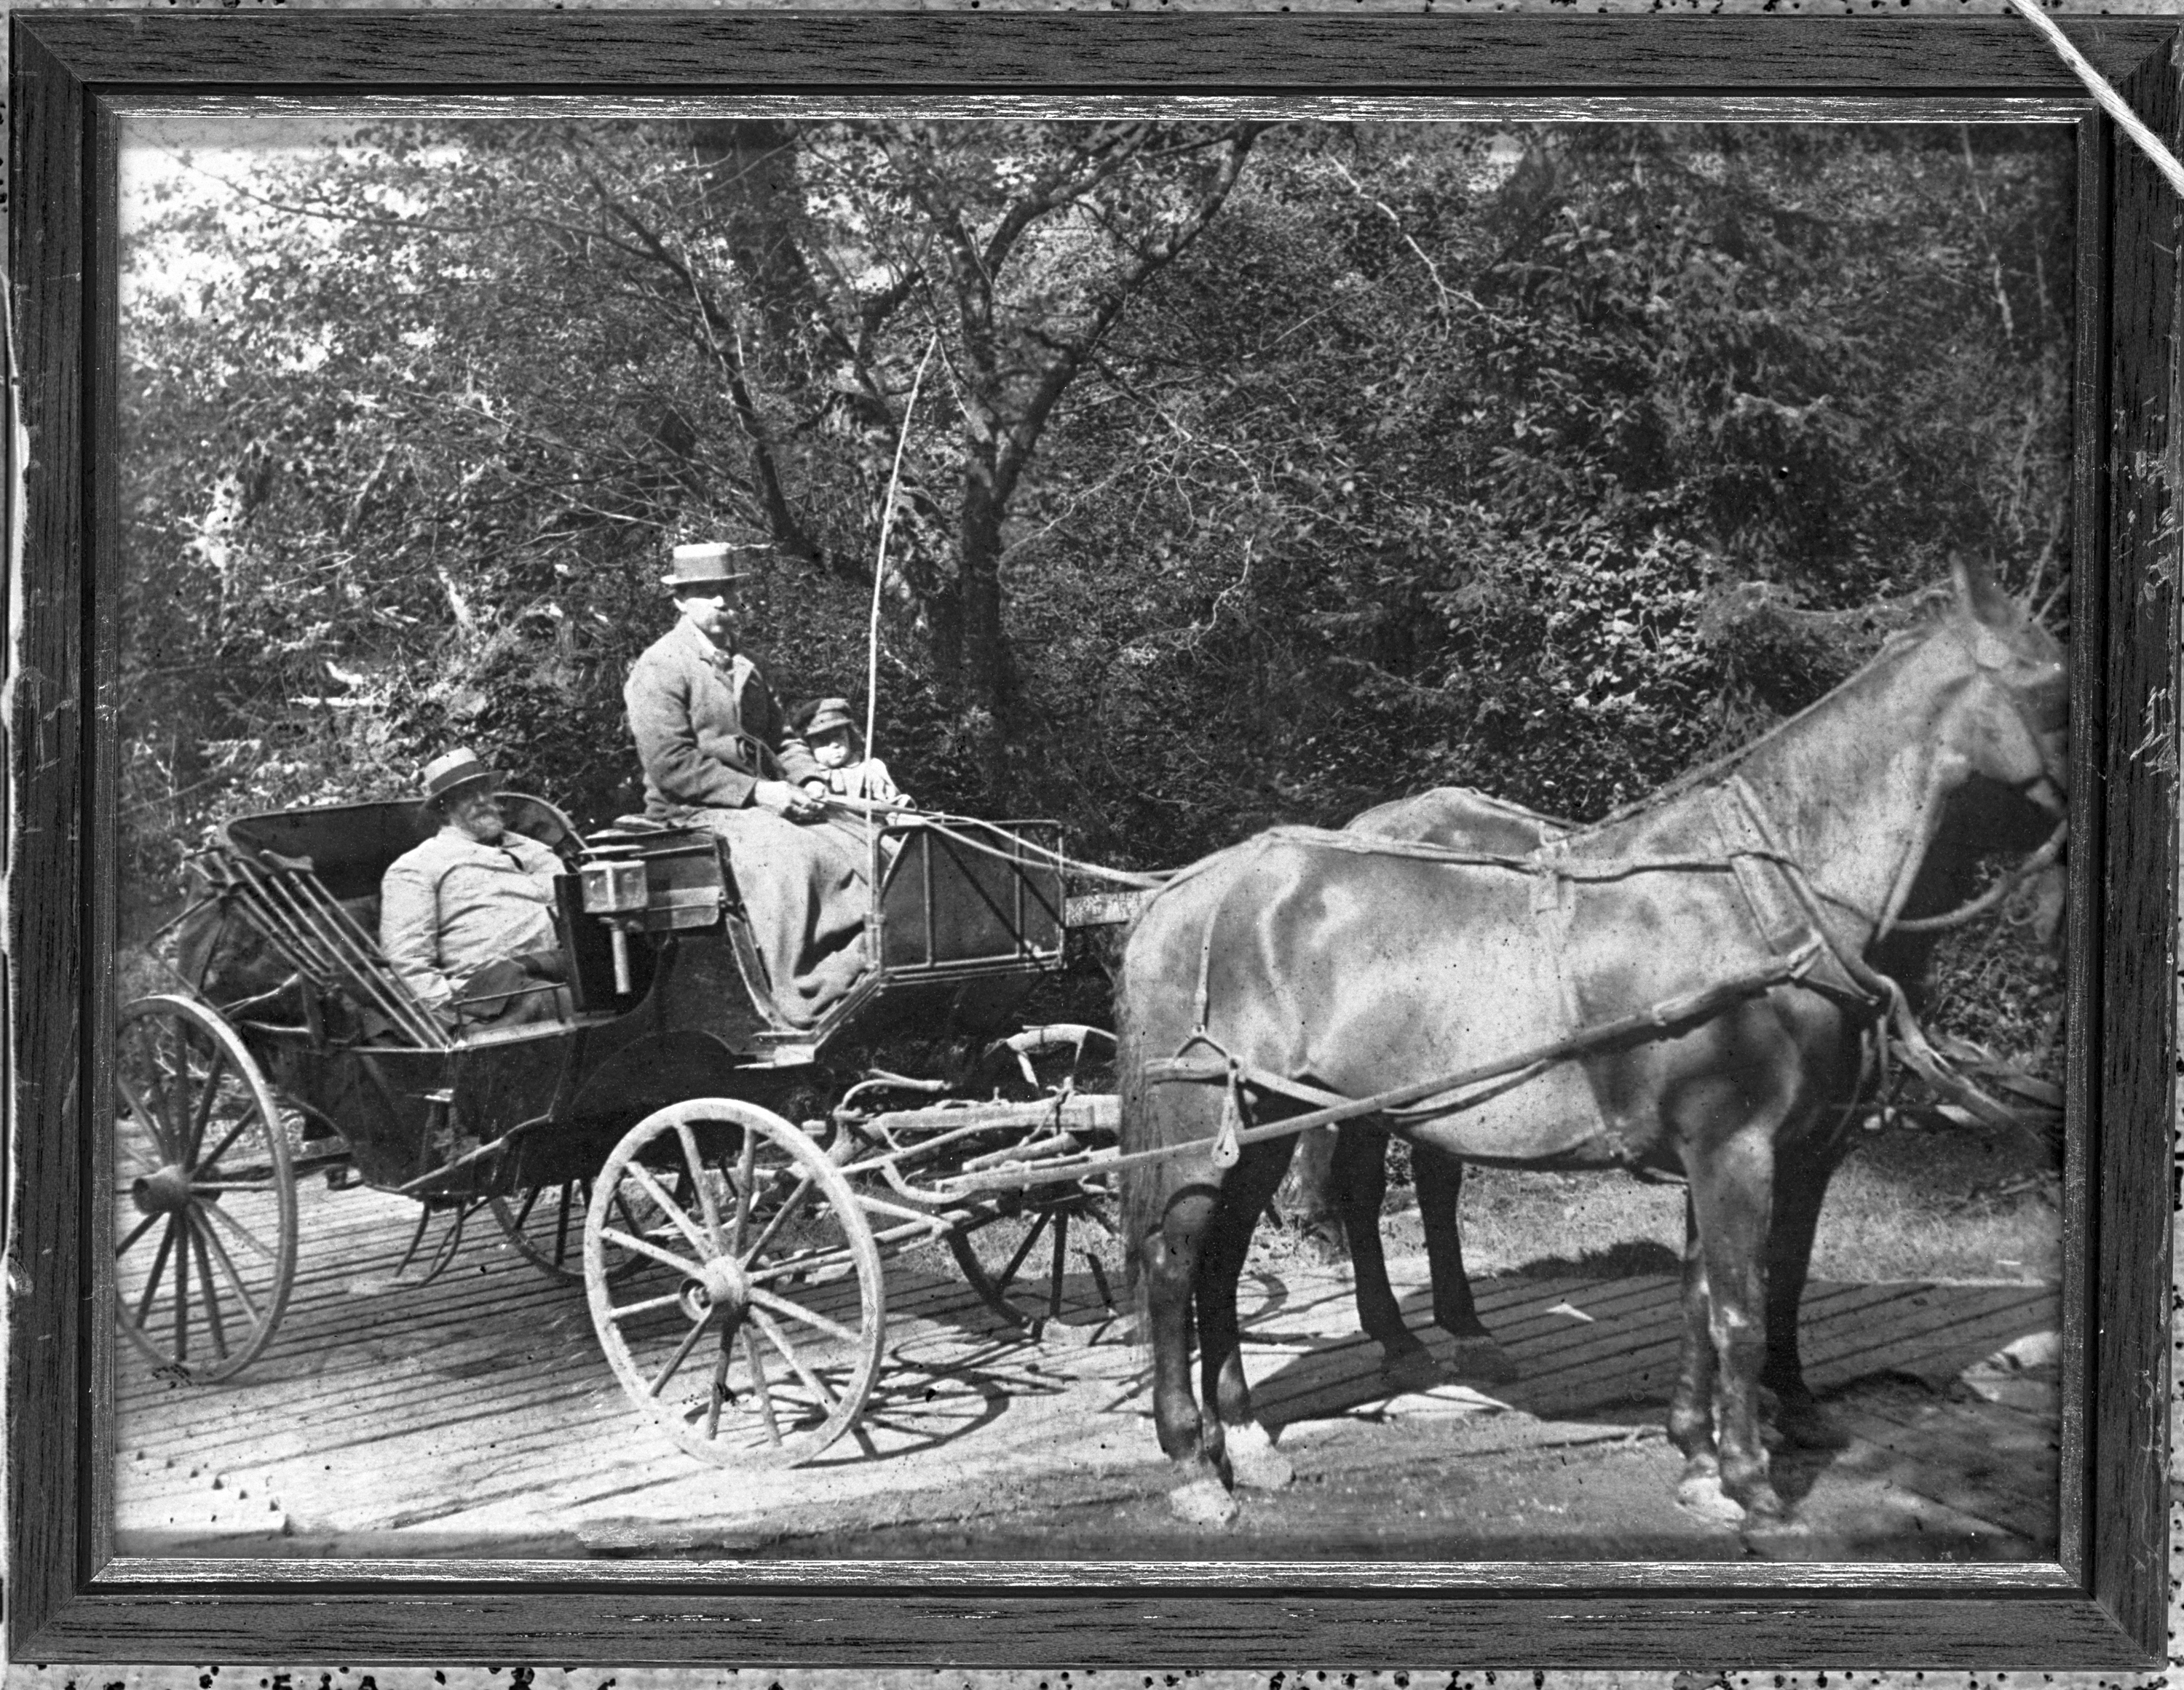 William S. Ladd in Carriage